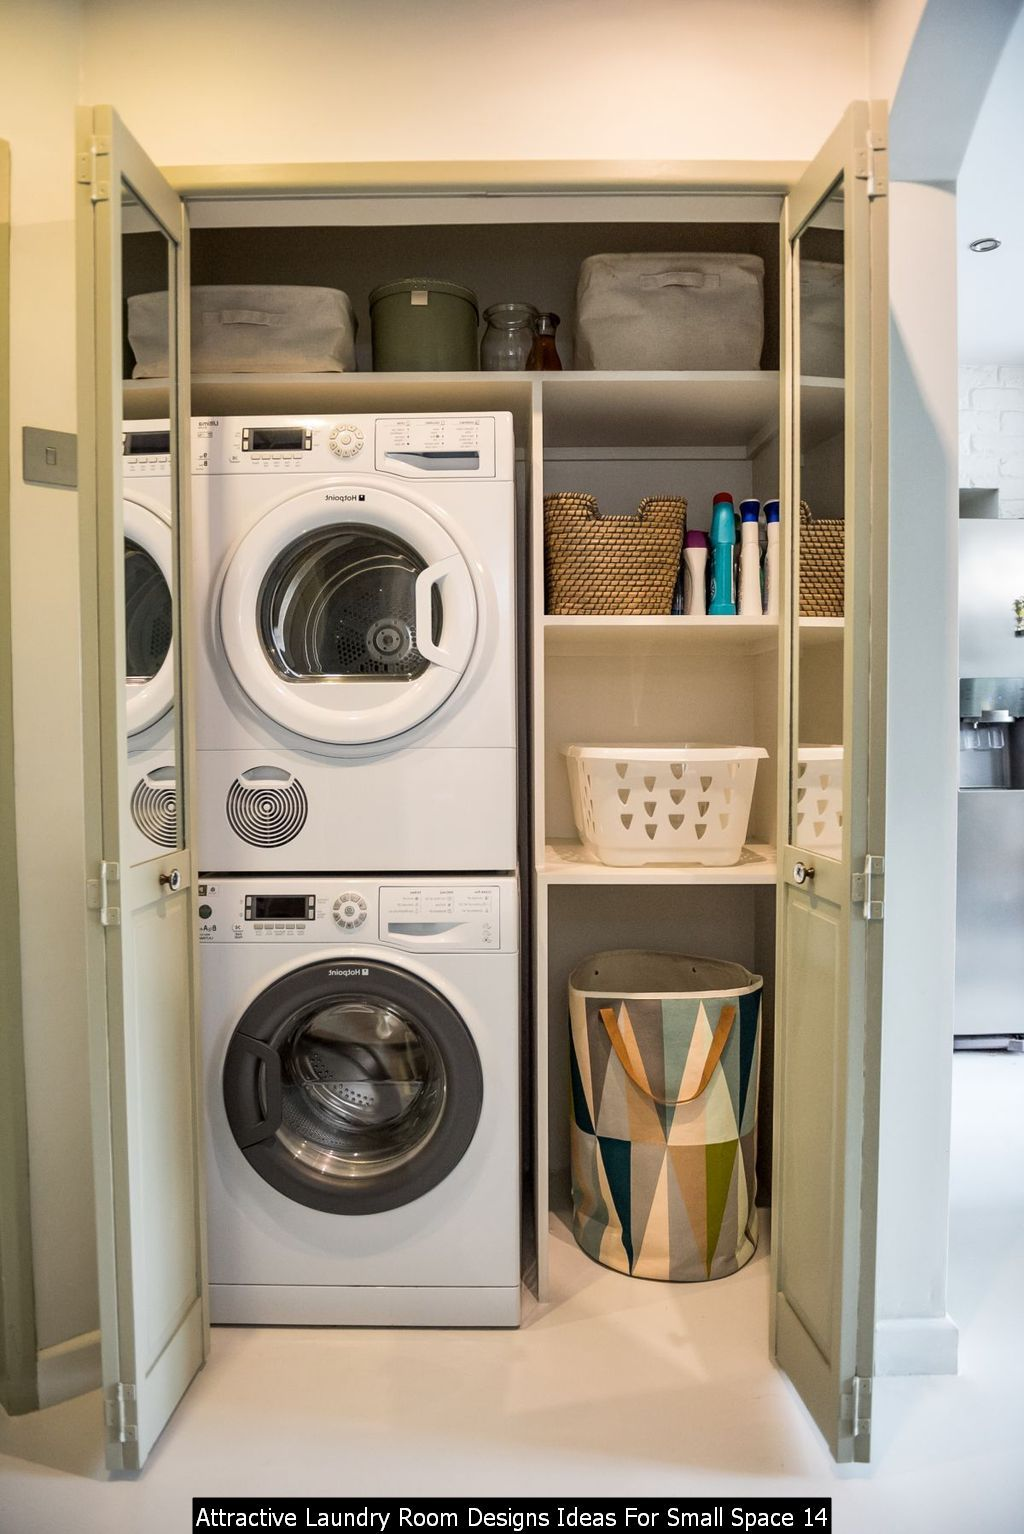 Awesome 24 Attractive Laundry Room Designs Ideas For Small Space In 2020 Small Utility Room Laundry Room Design Room Design